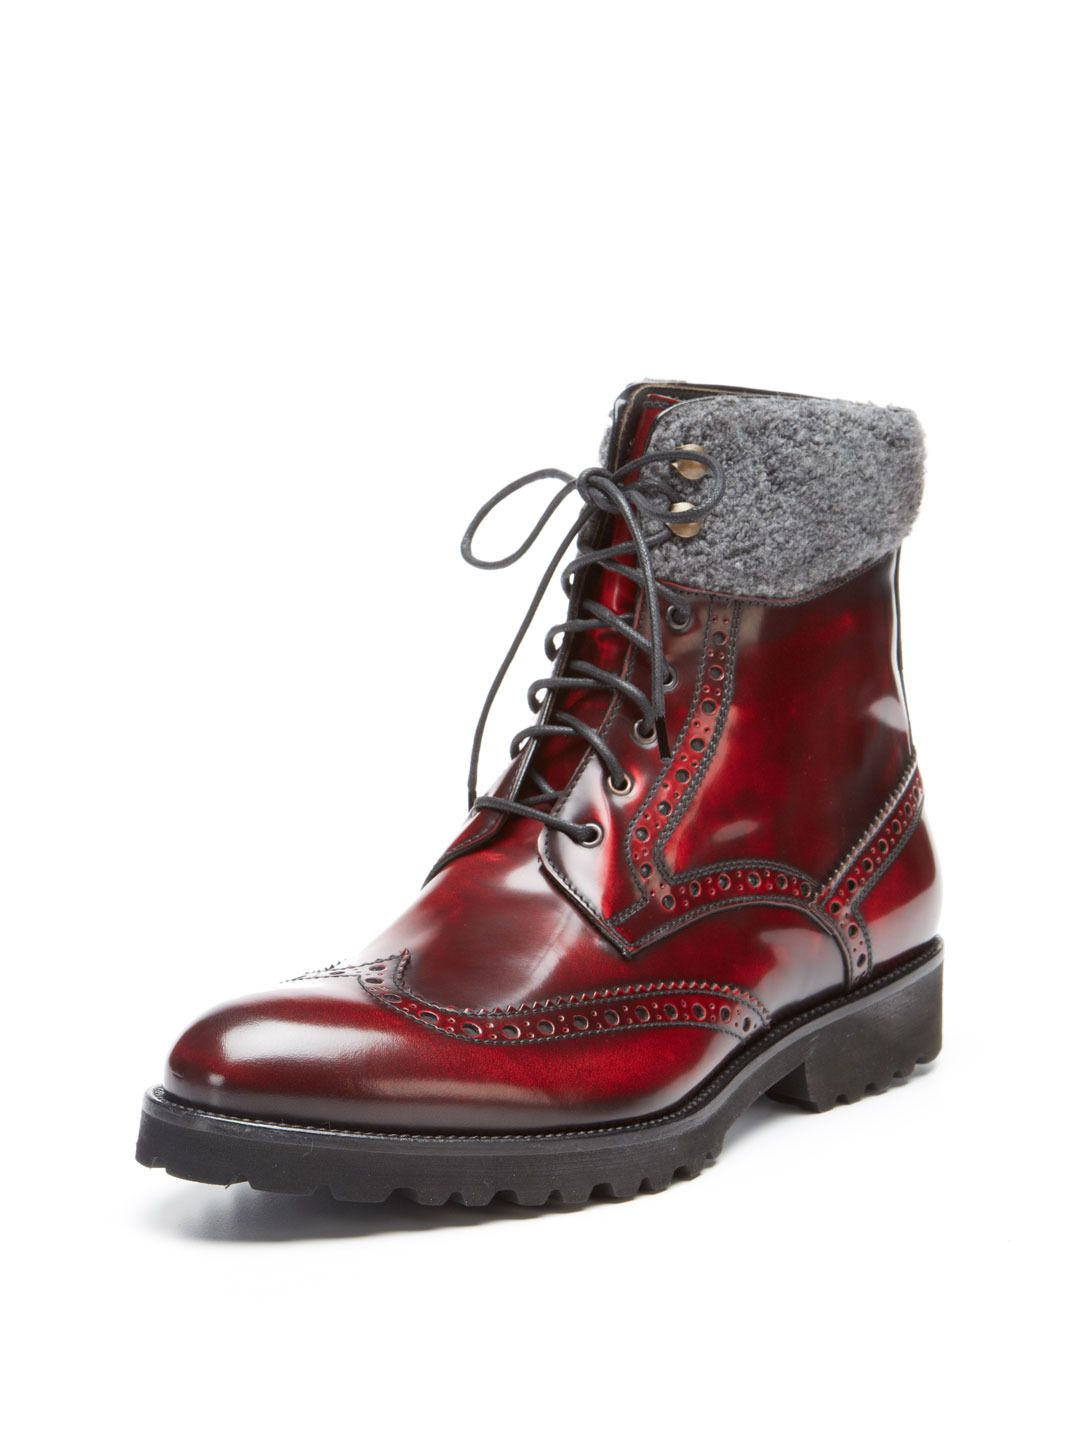 wingtip fall/ winter | GuyStyle | Shoe boots, Boots, Dress